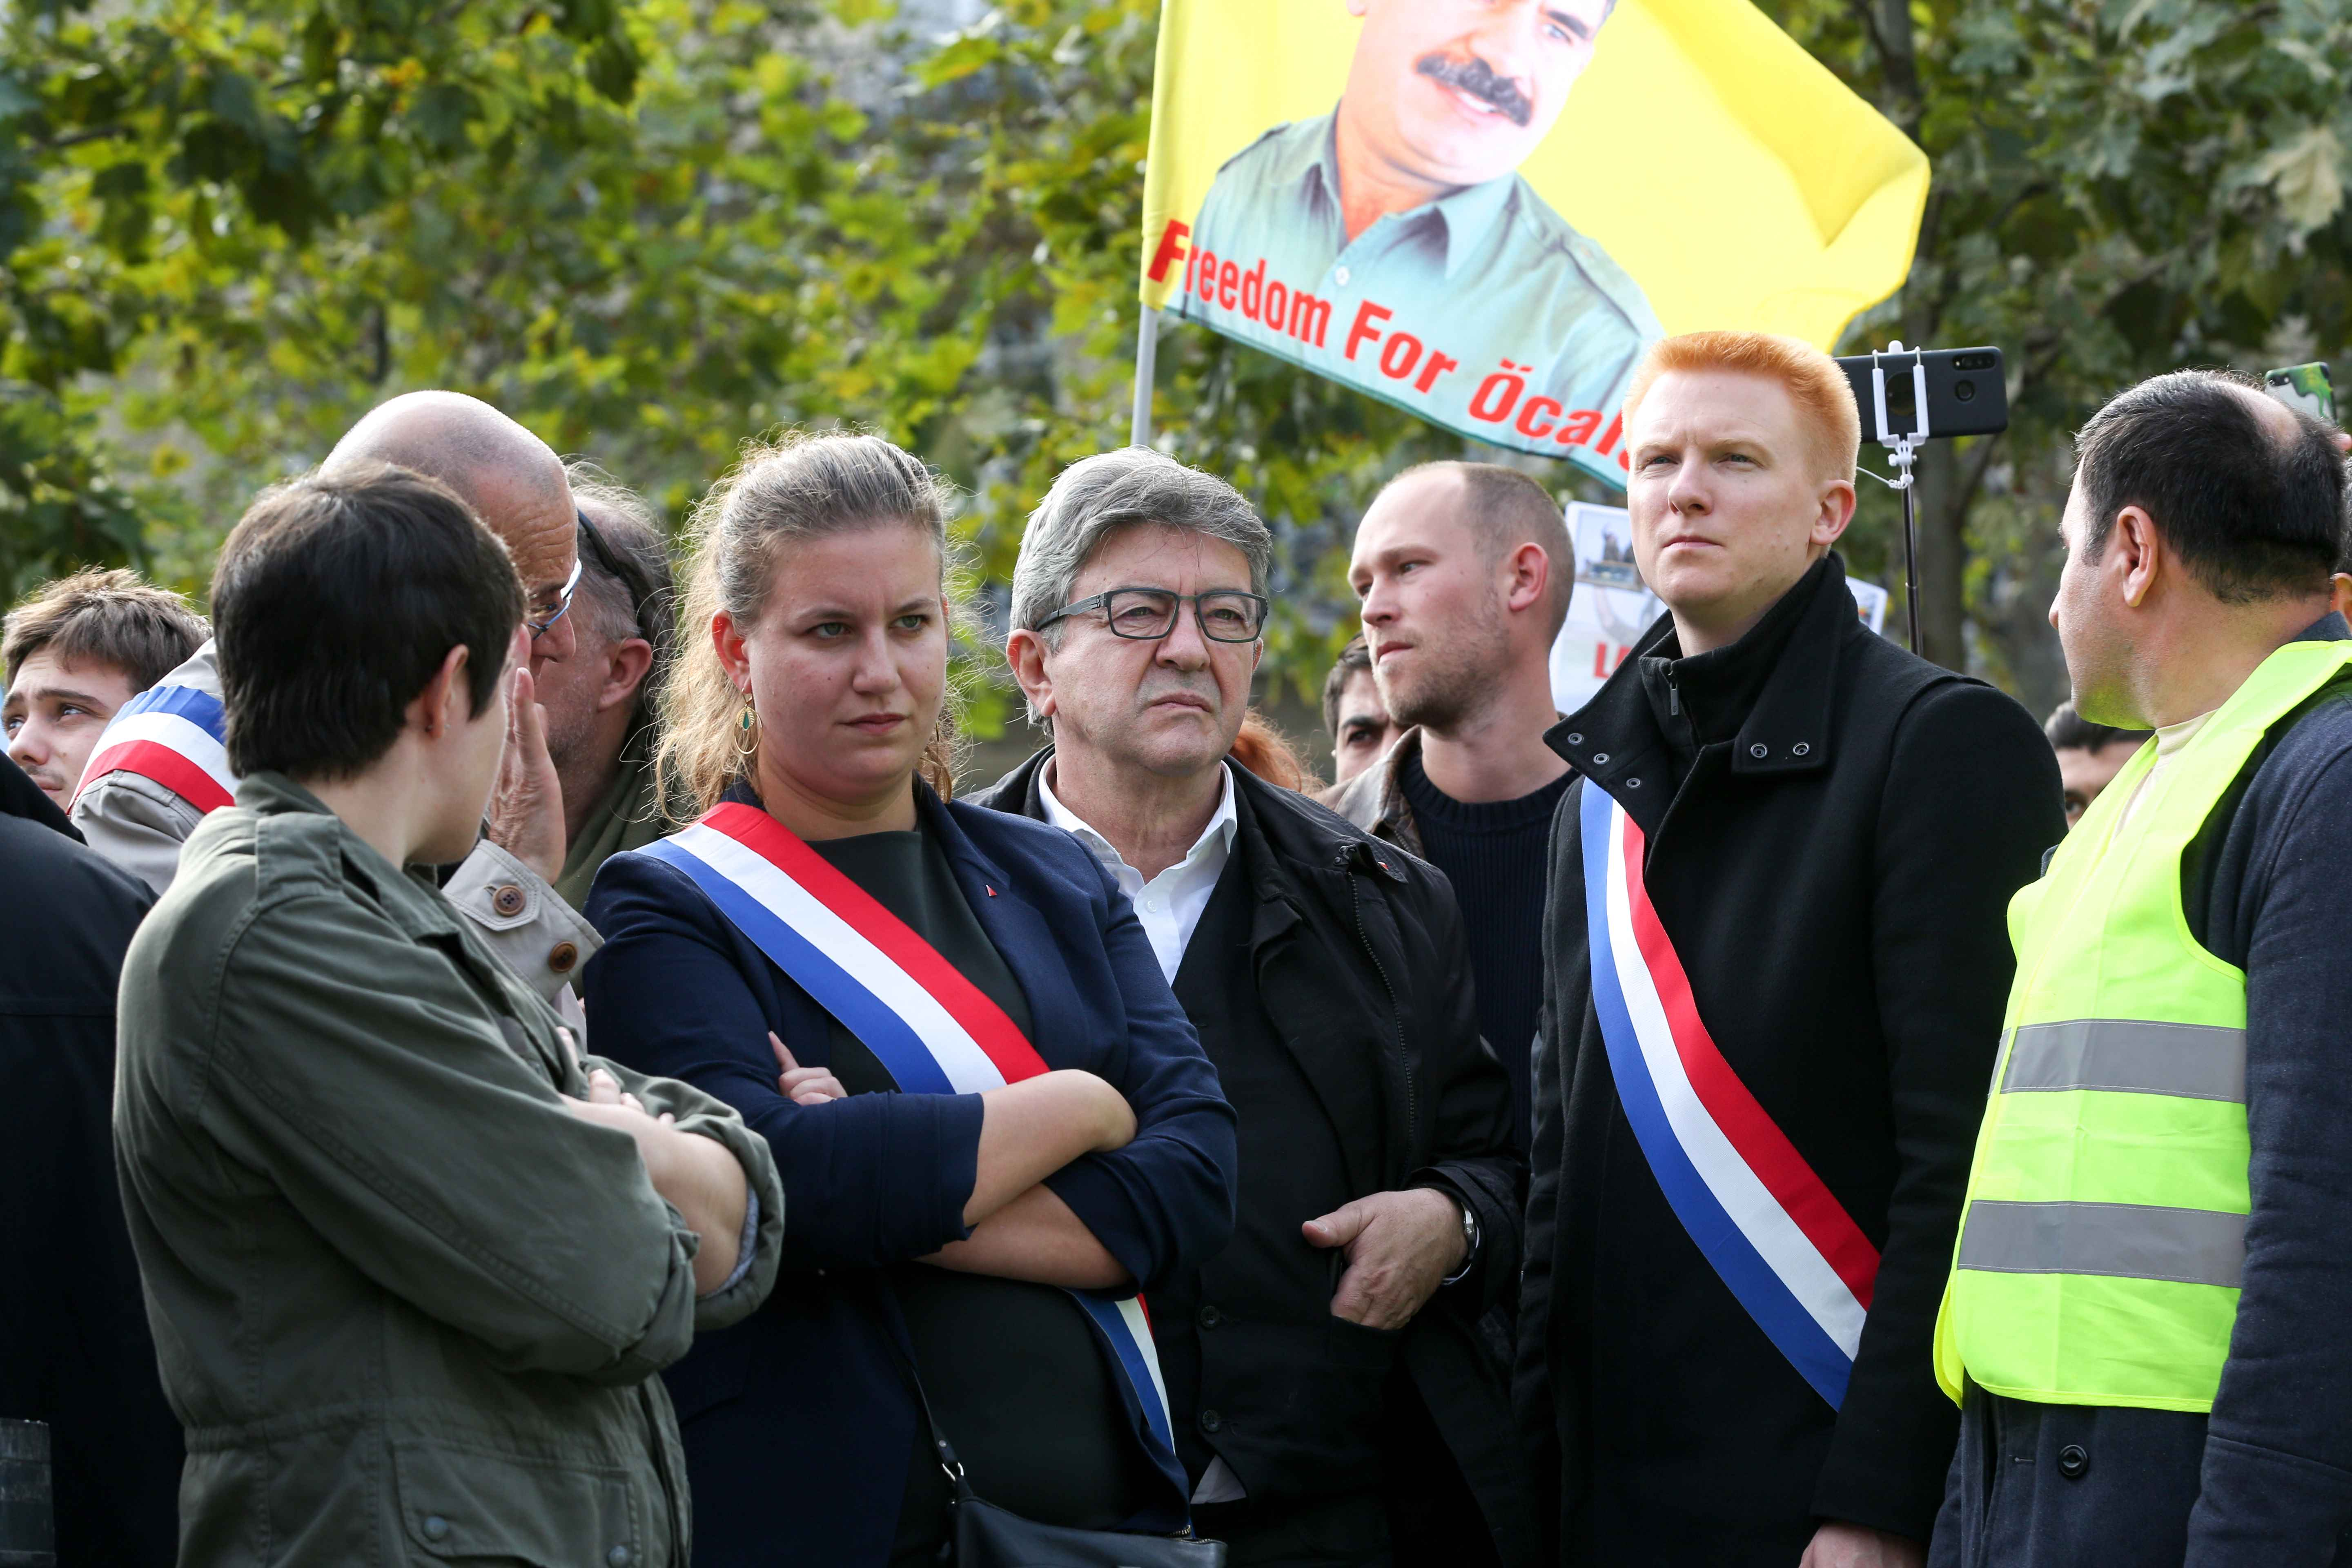 French member of Parliament and president of the leftist La France Insoumise (LFI) party Jean-Luc Melenchon (C) takes part on October 12, 2019 in Paris in a demonstration in support of the Kurds and against the Turkish offensive in Syria. On October 9, 201